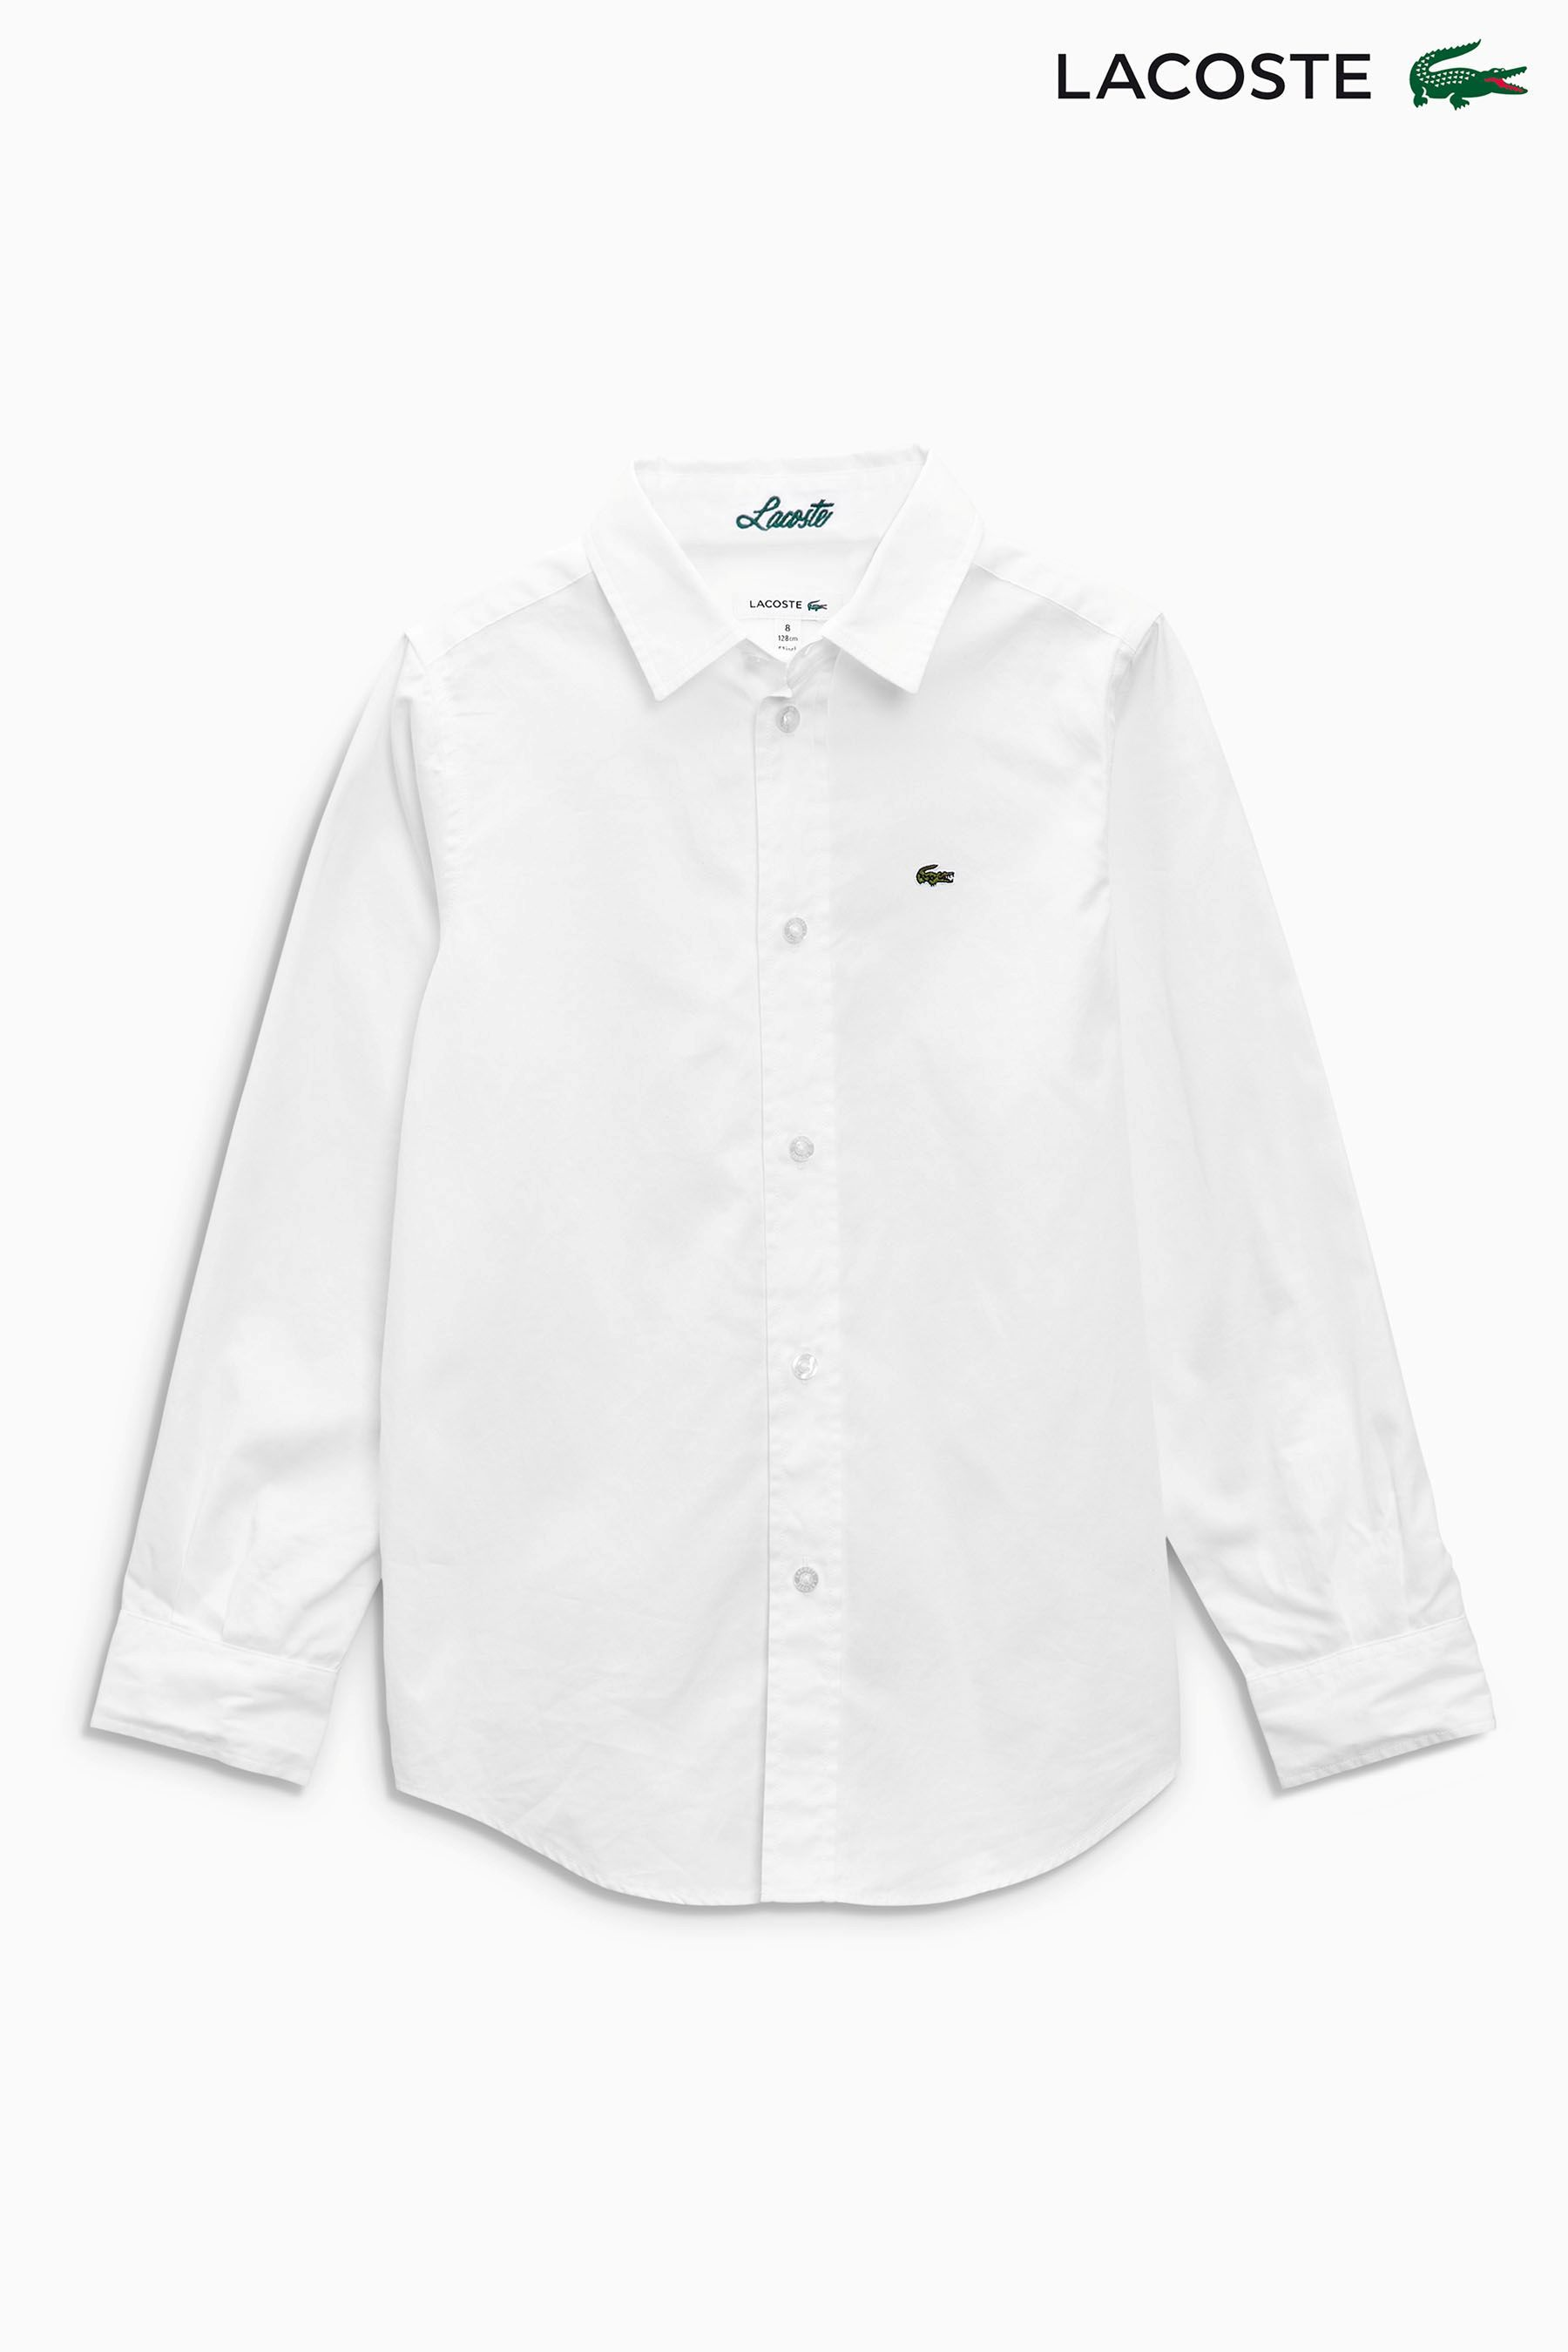 7db66d779 Boys Lacoste Long Sleeved Oxford Shirt - White